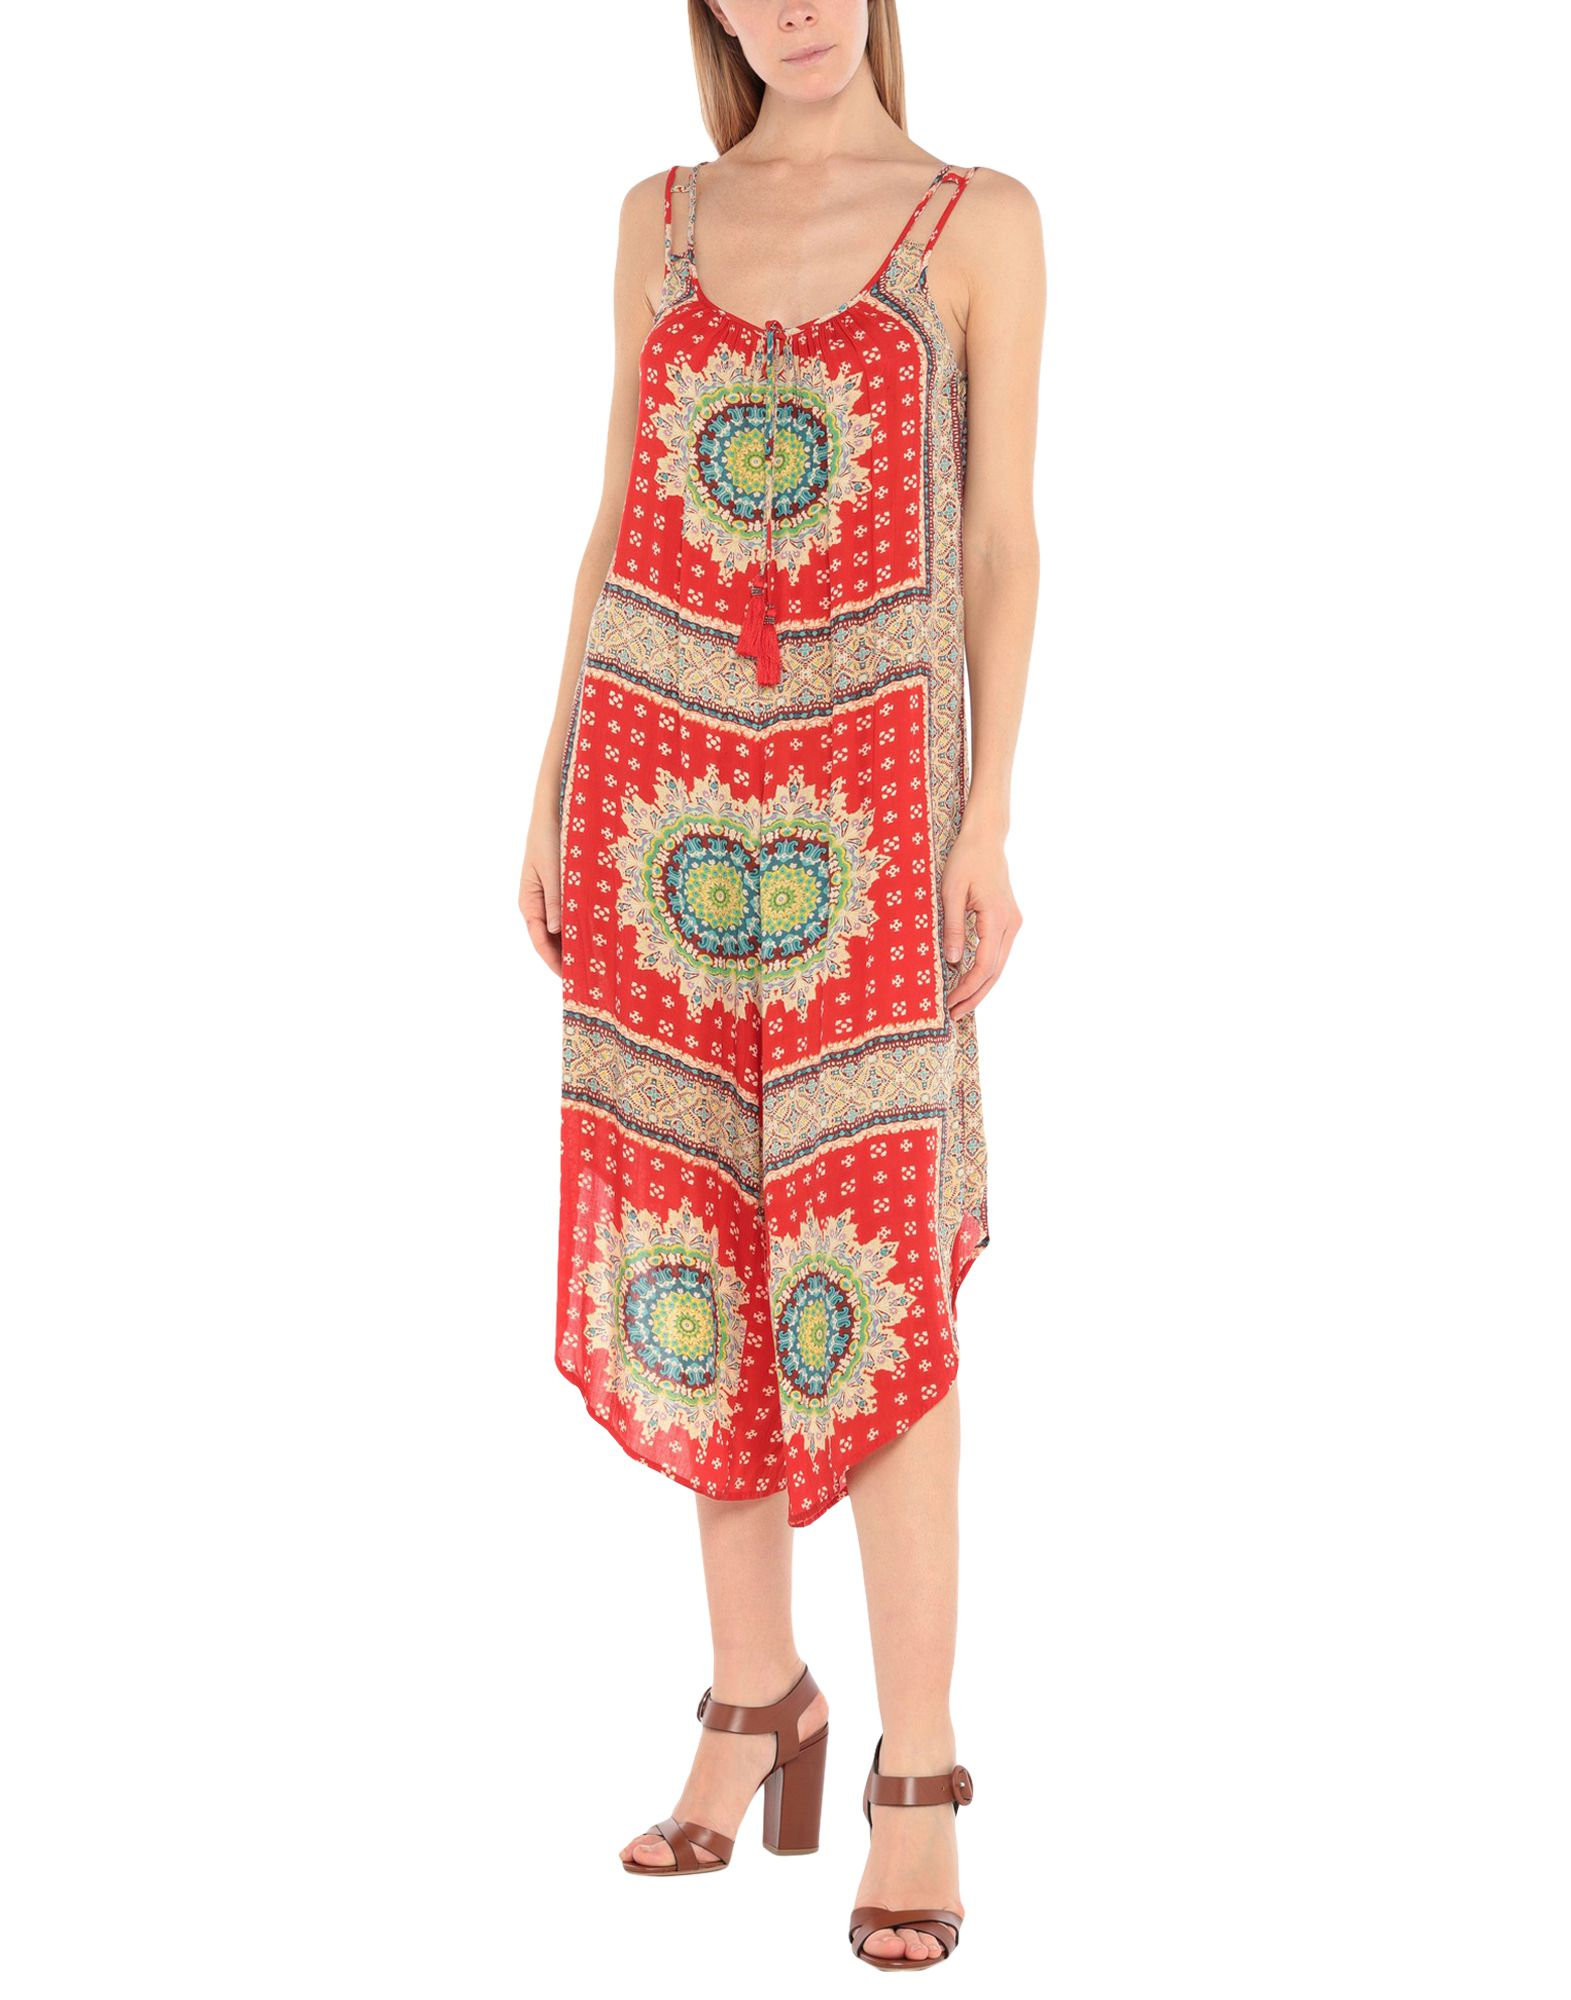 BAND OF GYPSIES Jumpsuits. plain weave, tassels, ethnic design, sleeveless, v-neck, unlined, no pockets. 100% Viscose